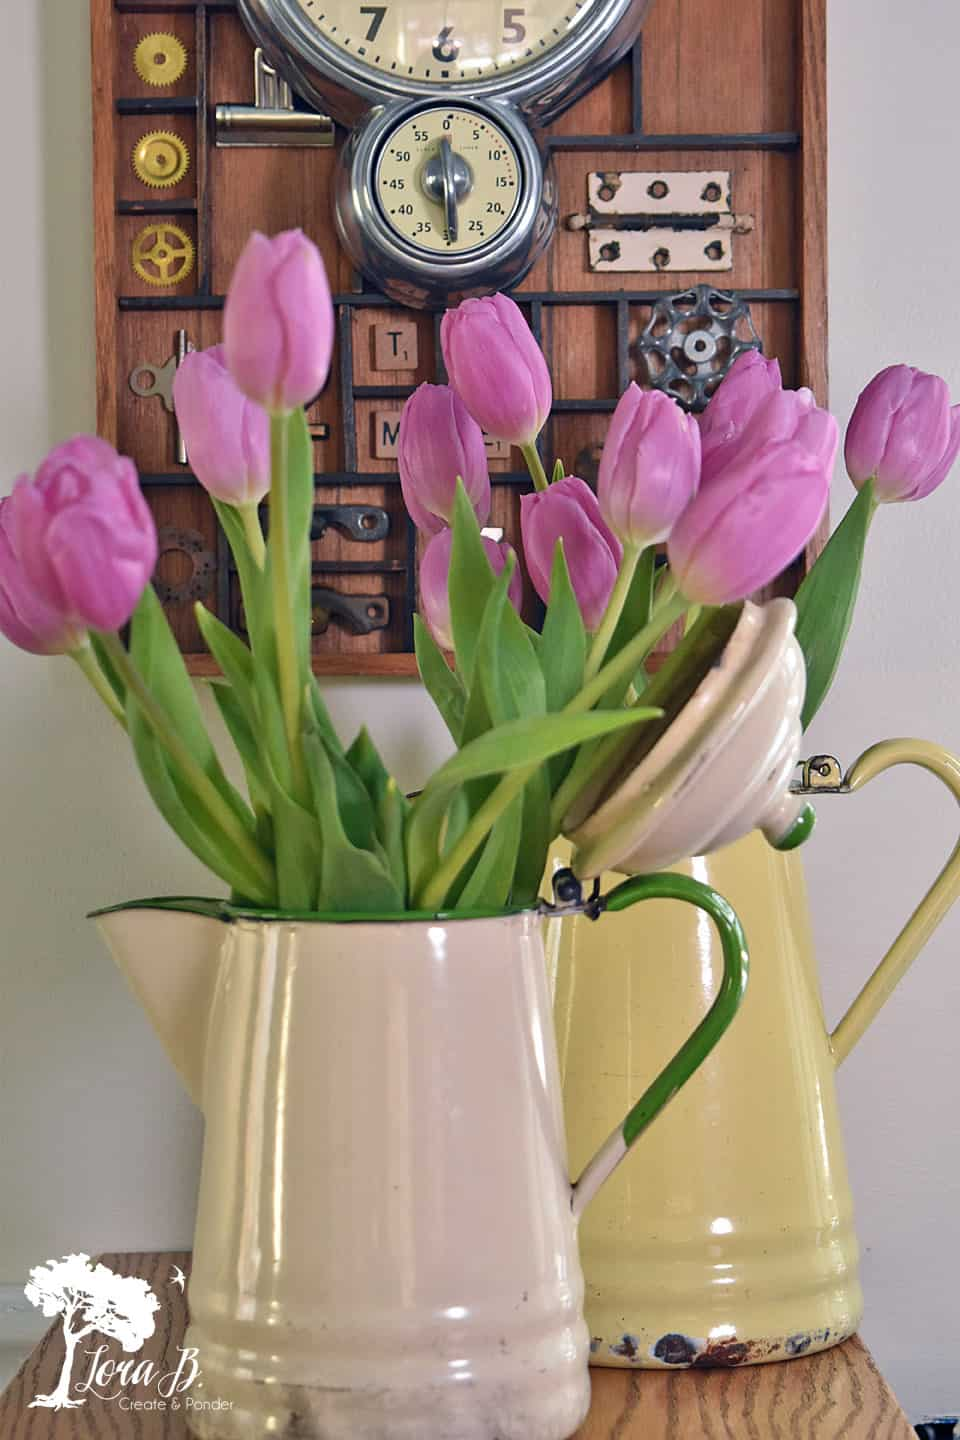 Tulips in enamelware pitcher